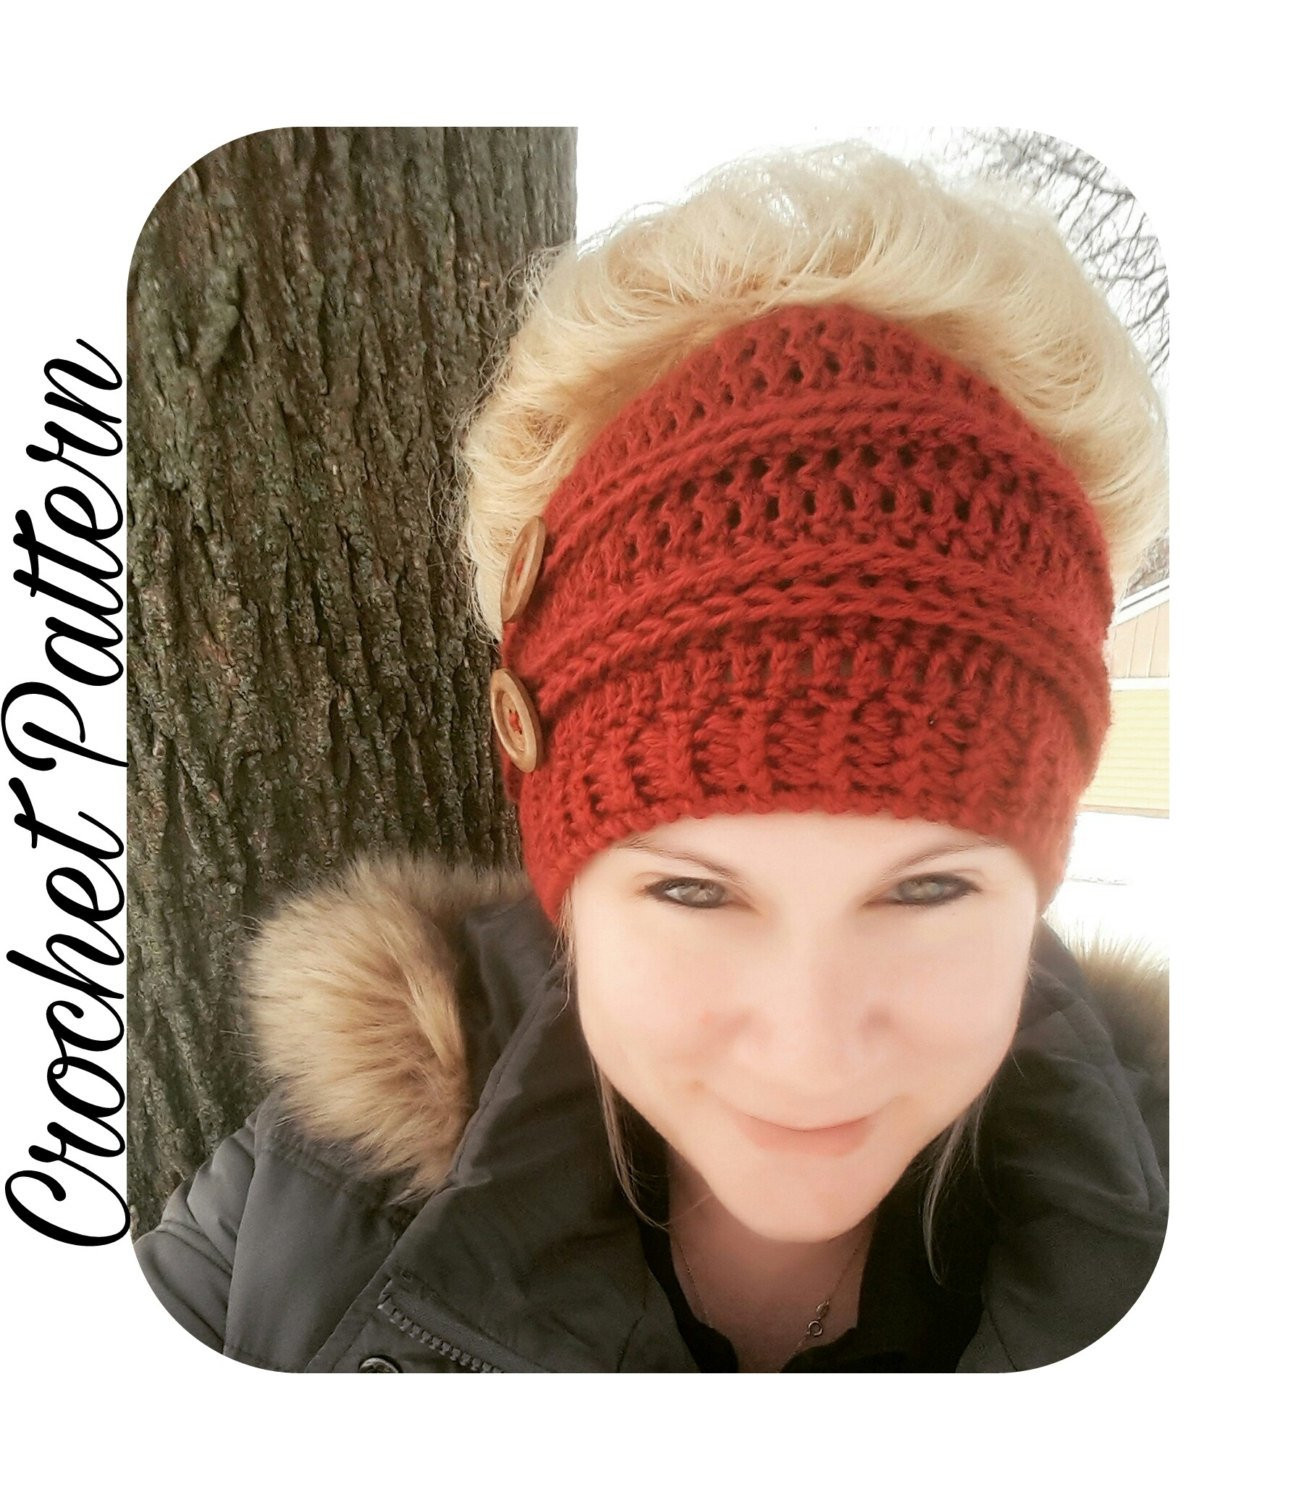 New Crochet Pattern Messy Bun Beanie Crochet Pattern Bun Hat Free Messy Bun Hat Pattern Of Amazing 42 Ideas Free Messy Bun Hat Pattern